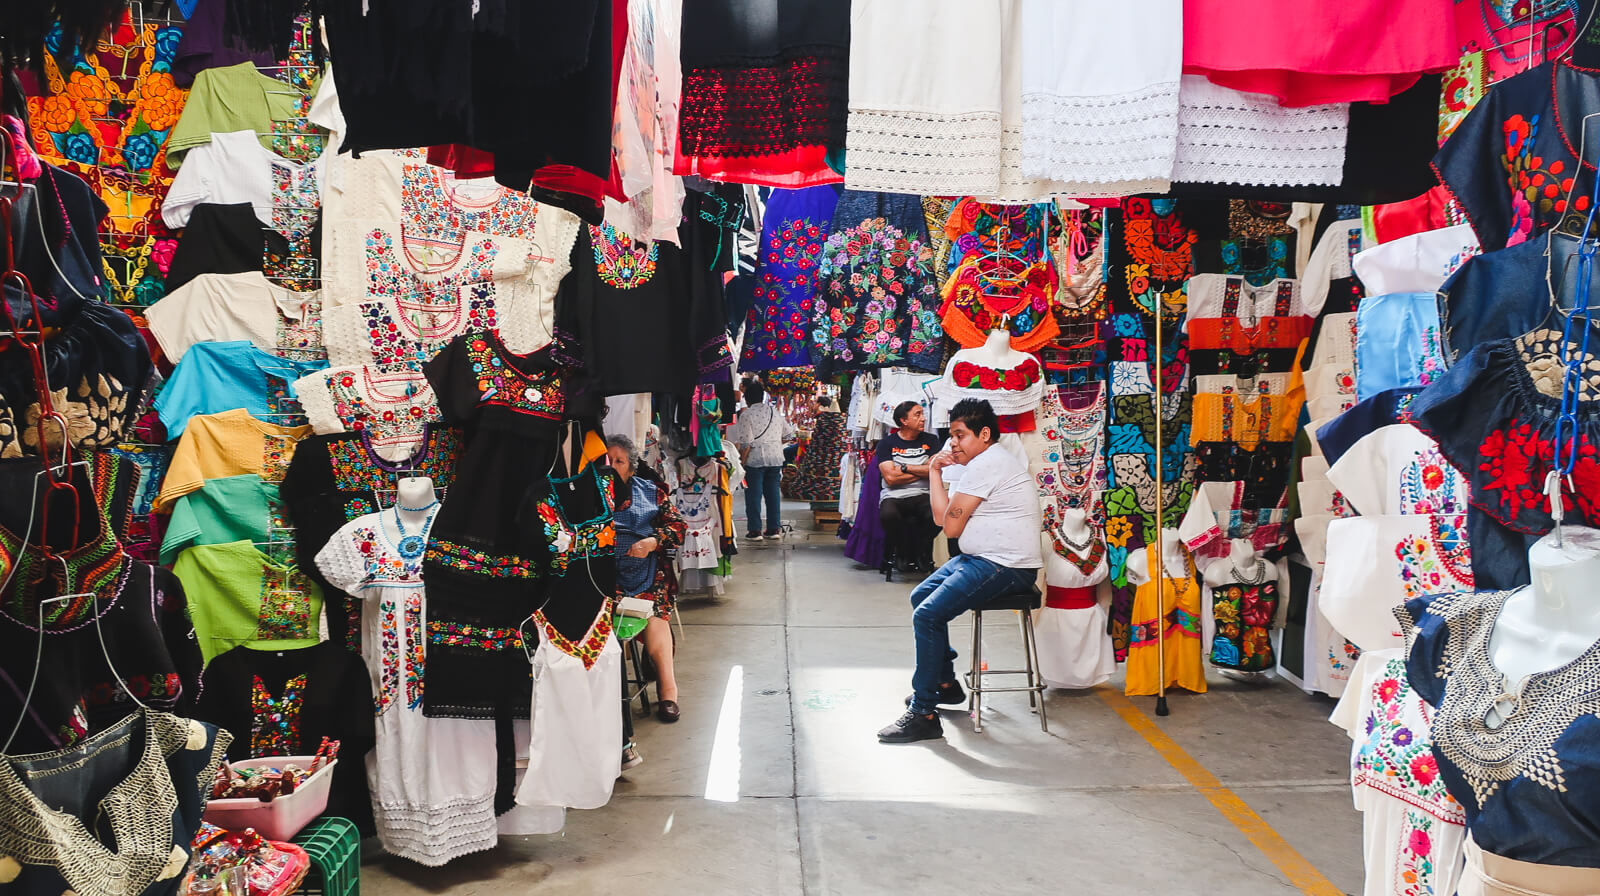 Colorful traditional clothing hang from stalls in the artisan market in Mexico City